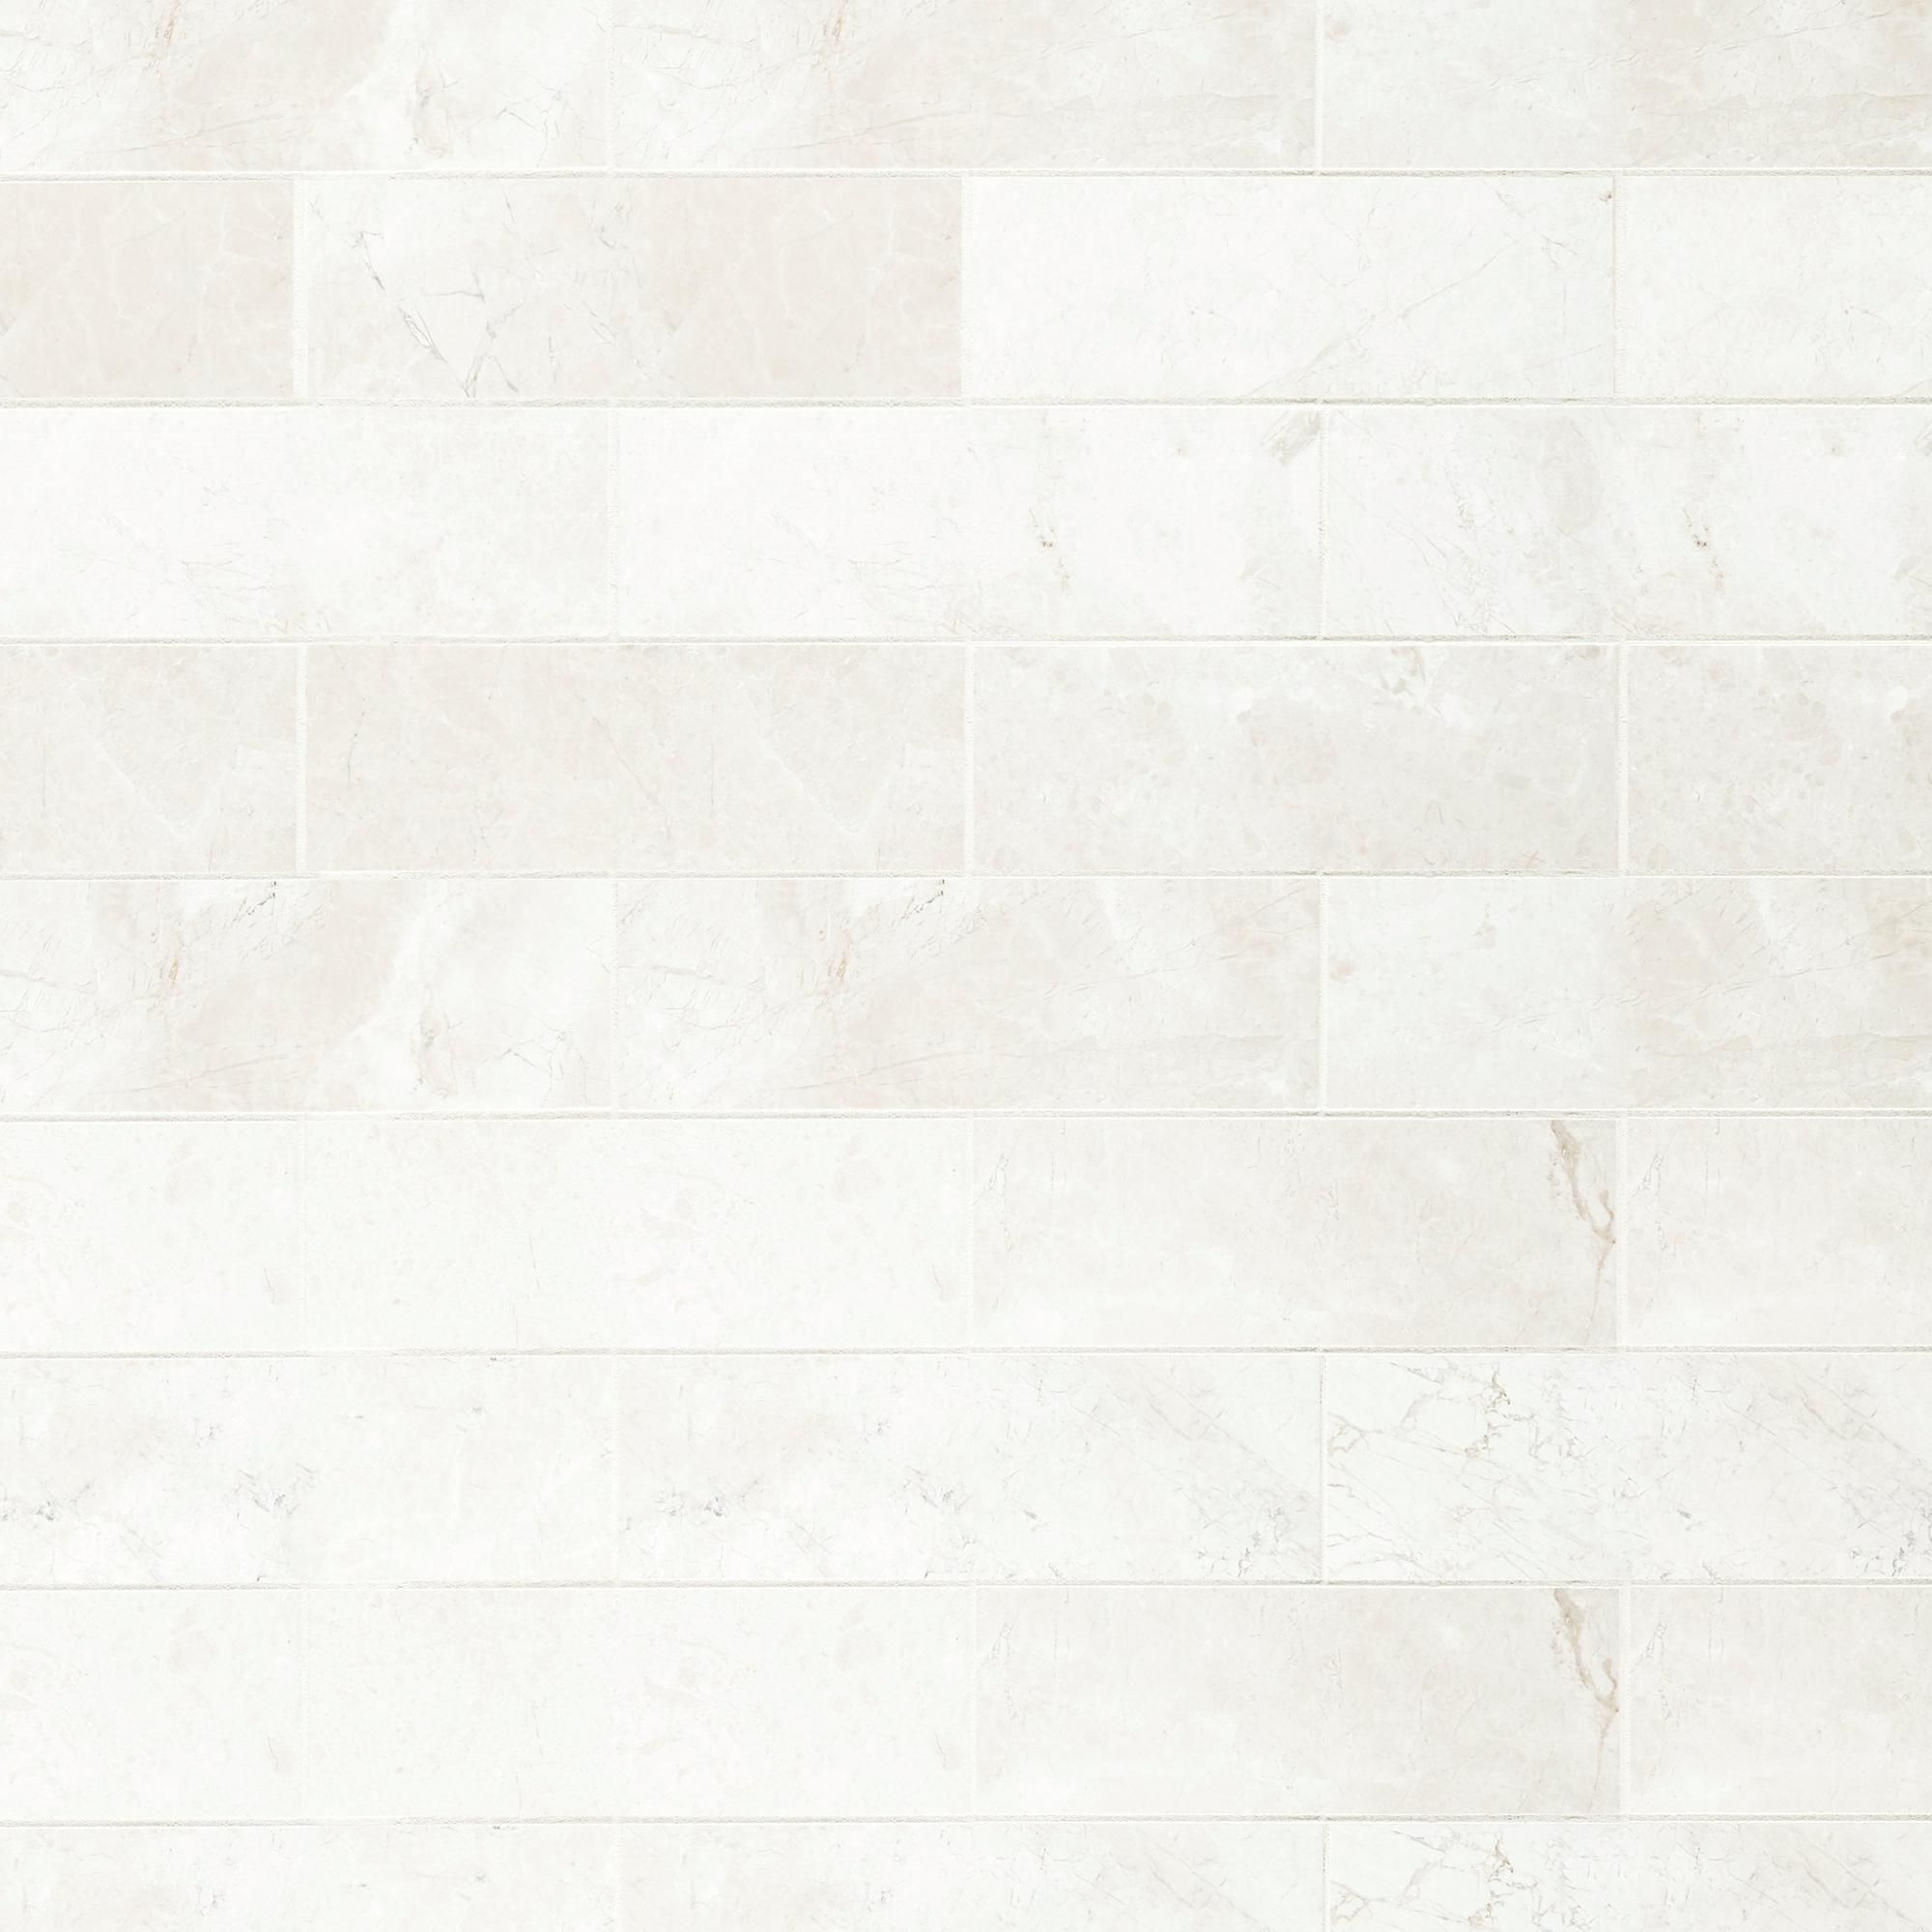 Santorini White Polished Marble Tile Polished Marble Tiles Marble Tile Floor Decor